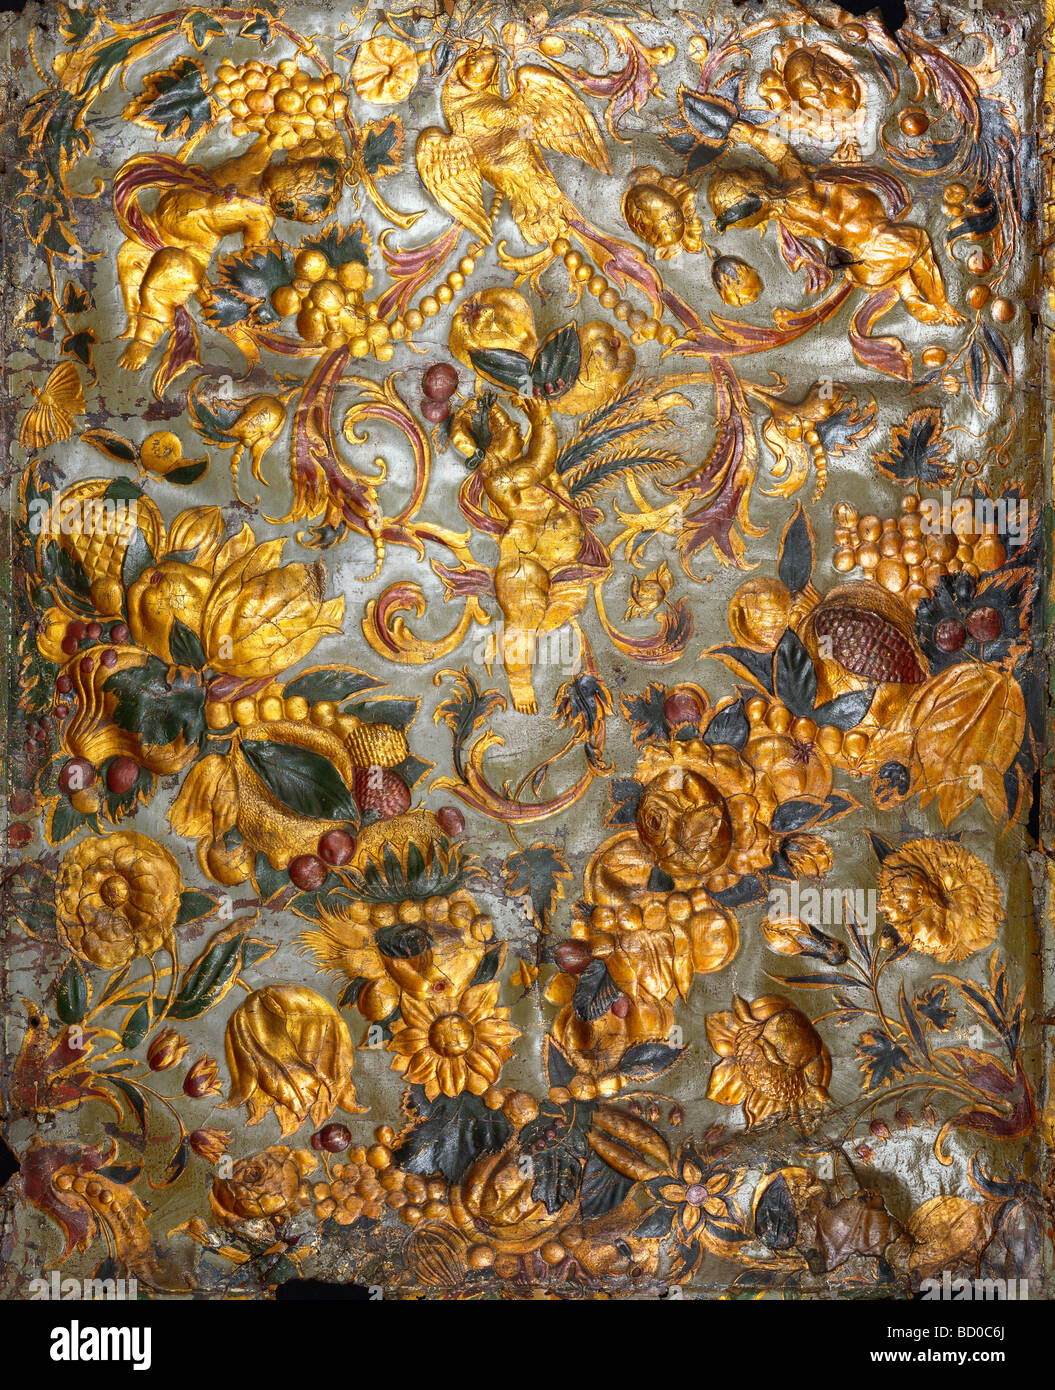 Panel, detail, by Martinus van den Heuvel. The Netherlands, late 17th century - Stock Image